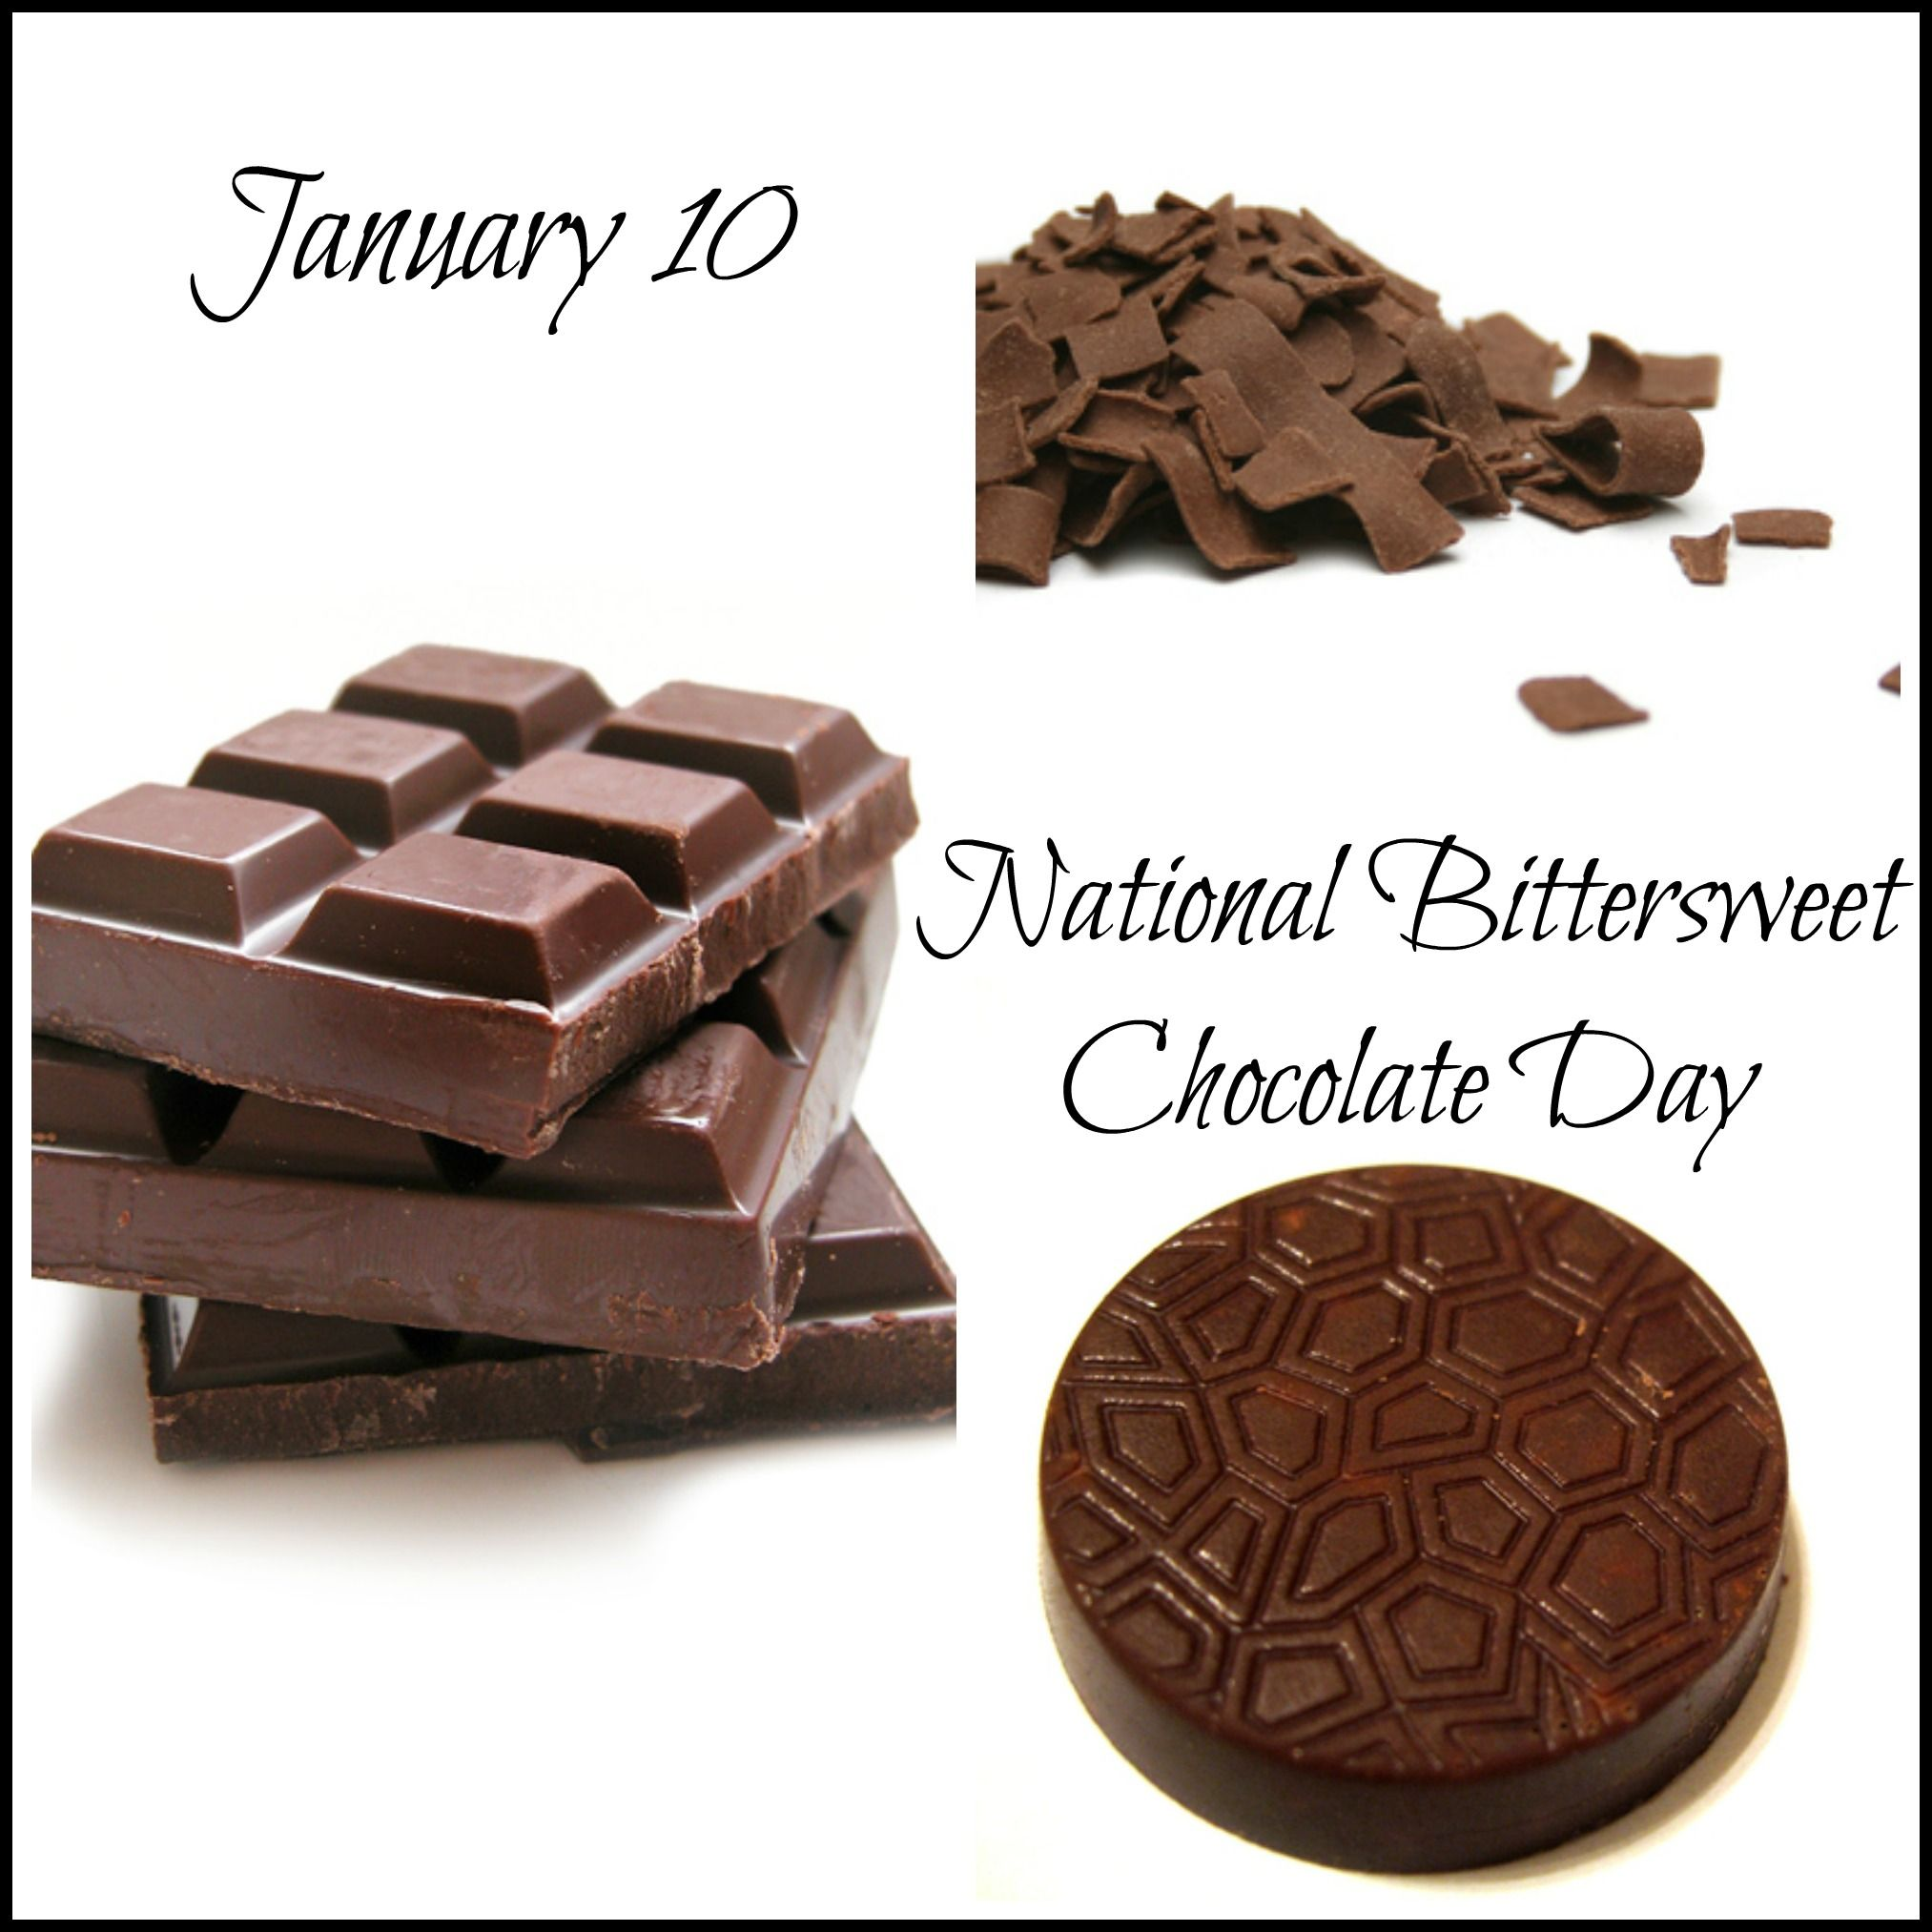 Food Holidays January 10 National Bittersweet Chocolate Day Bittersweet Chocolate Chocolate Day Chocolate